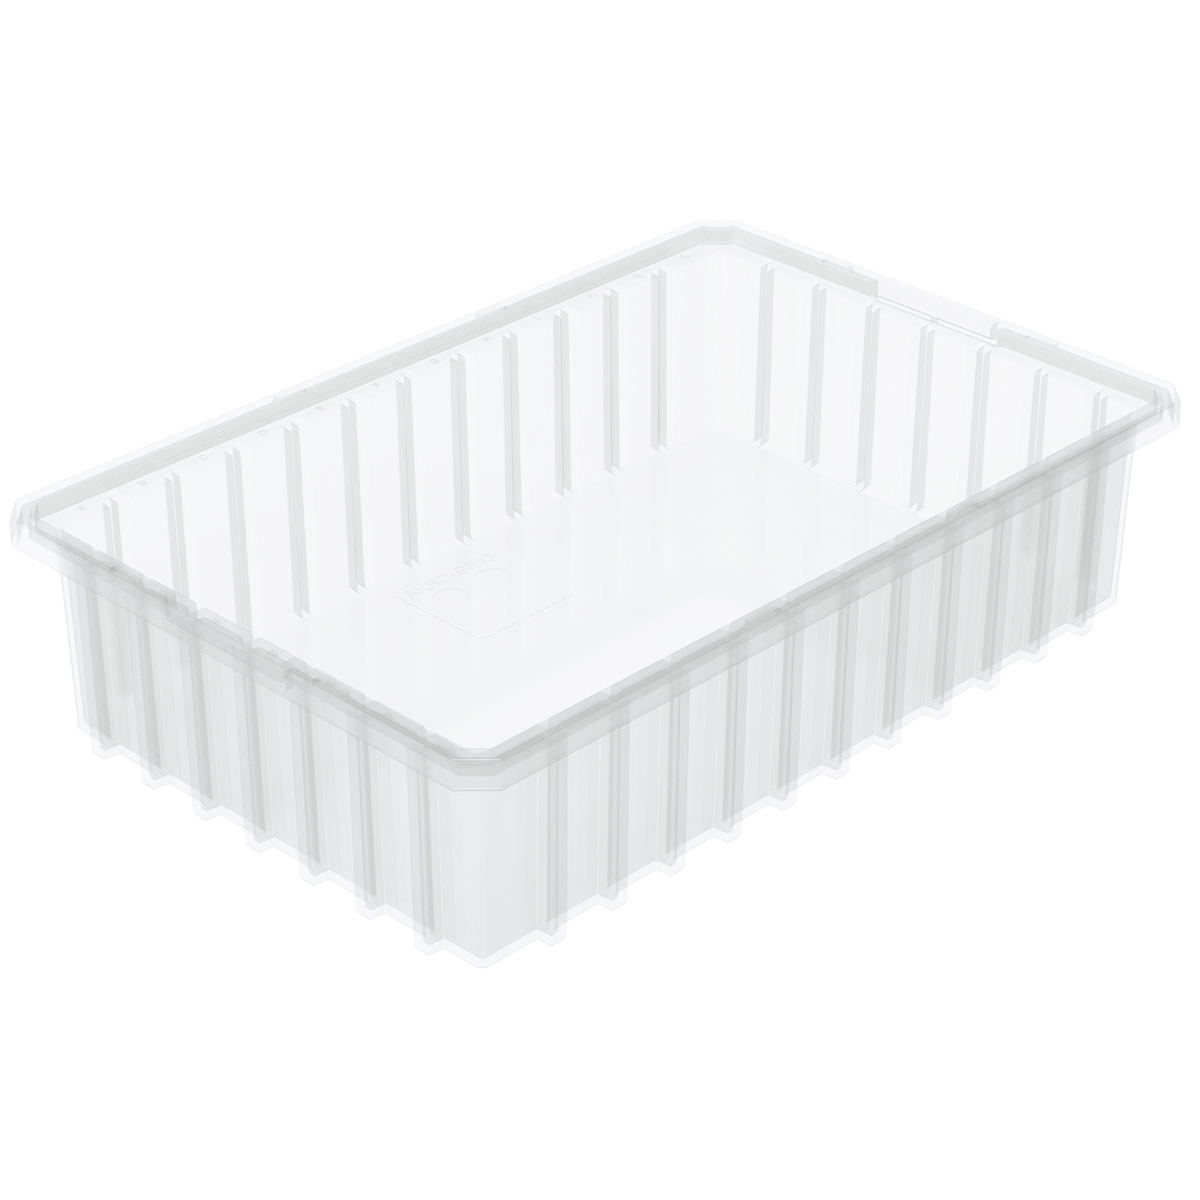 Akro-Grid Dividable Box 16-1/2 x 10-7/8 x 4, Clear (33164SCLAR).  This item sold in carton quantities of 12.